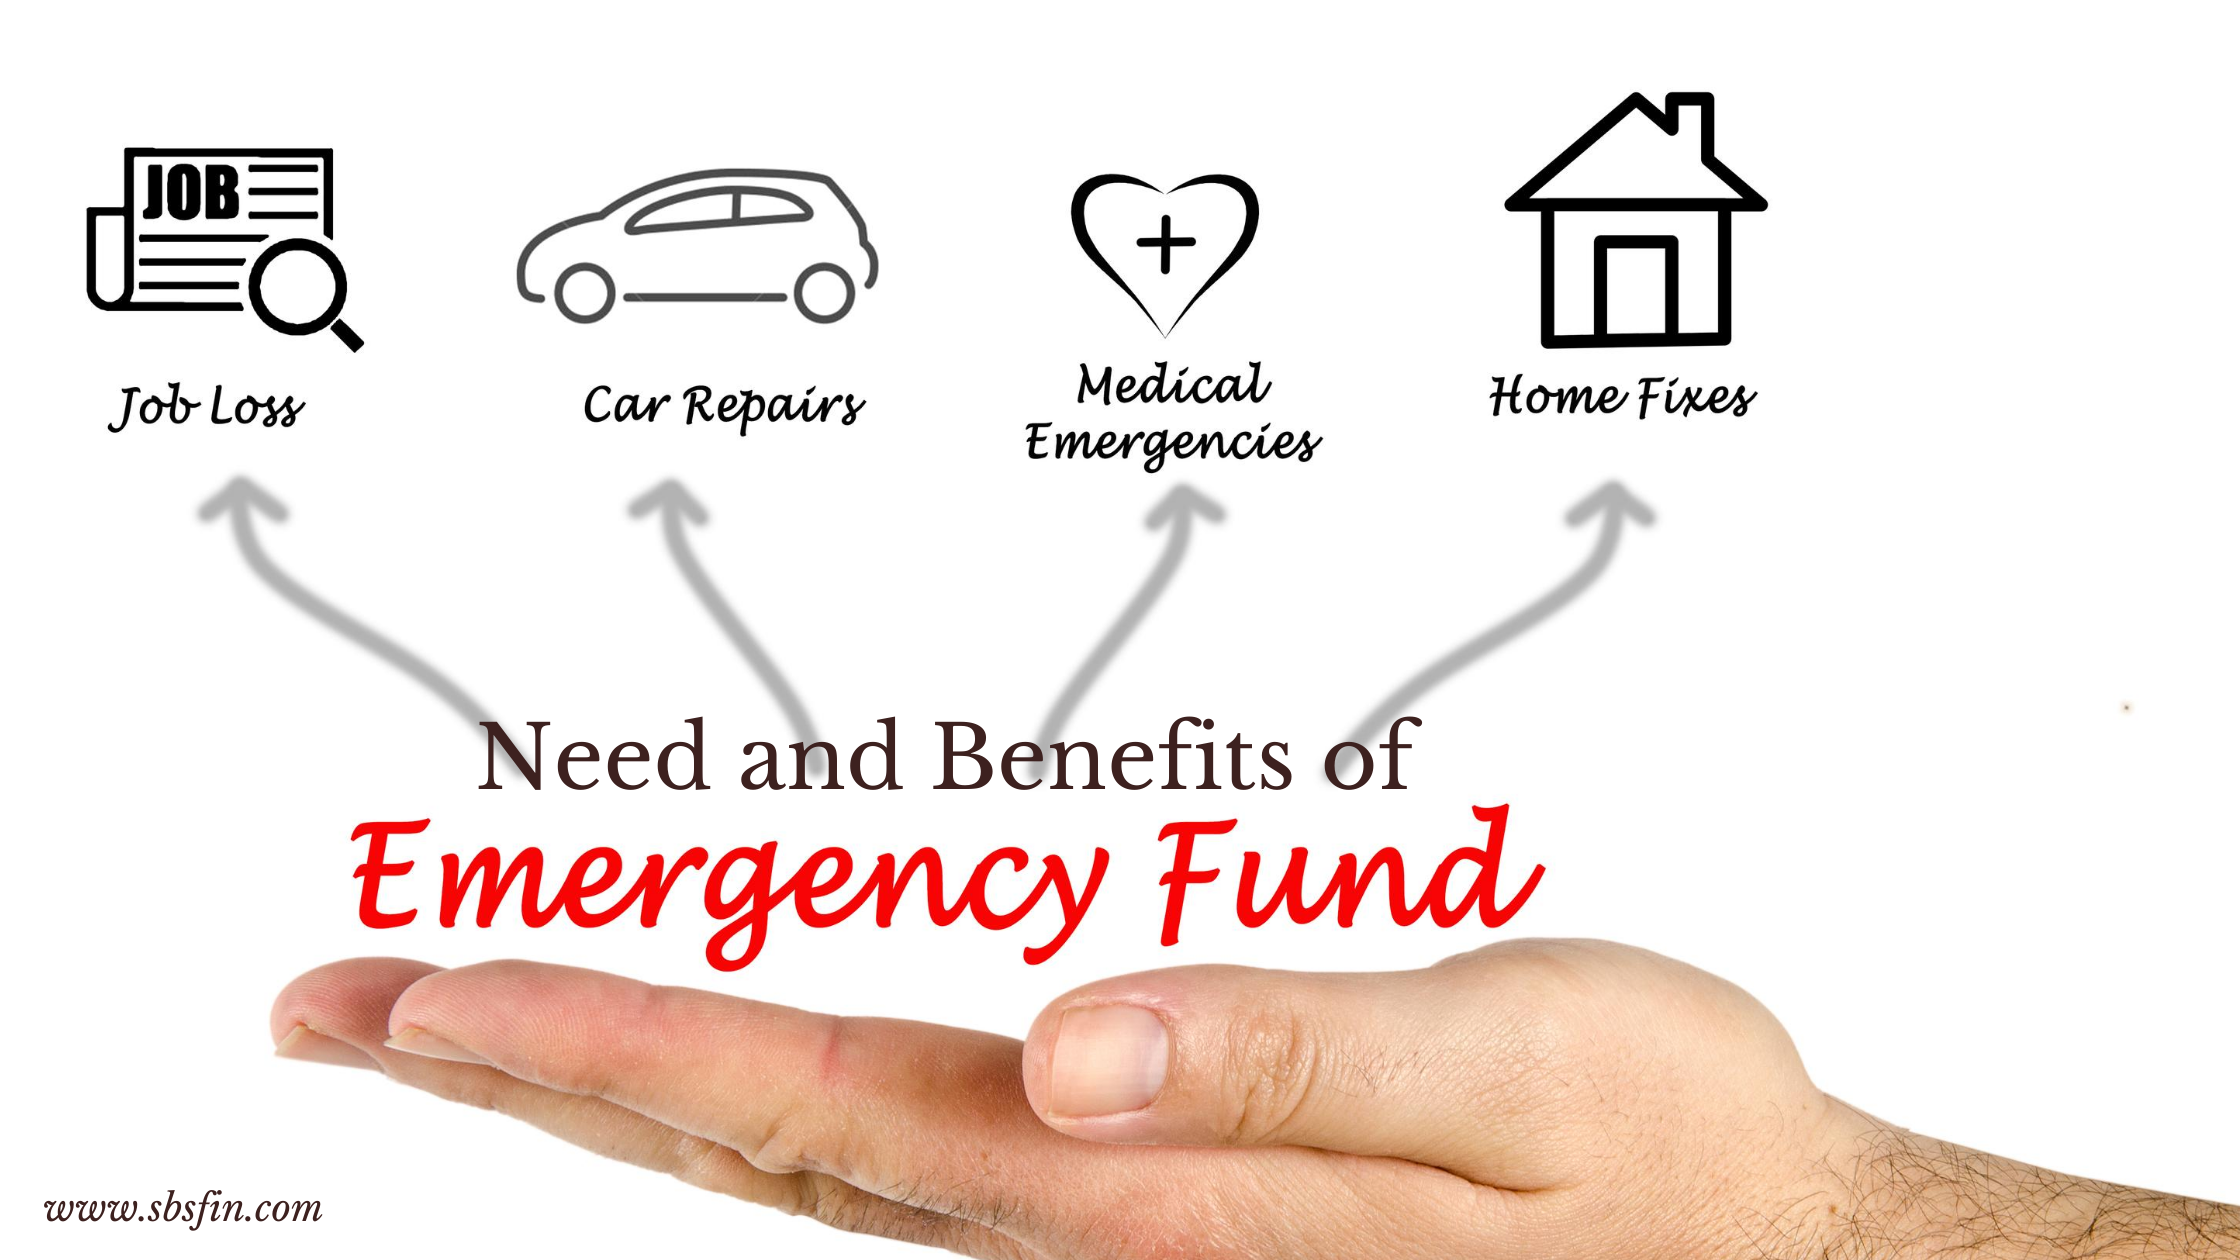 Need and Benefits of Emergency Fund